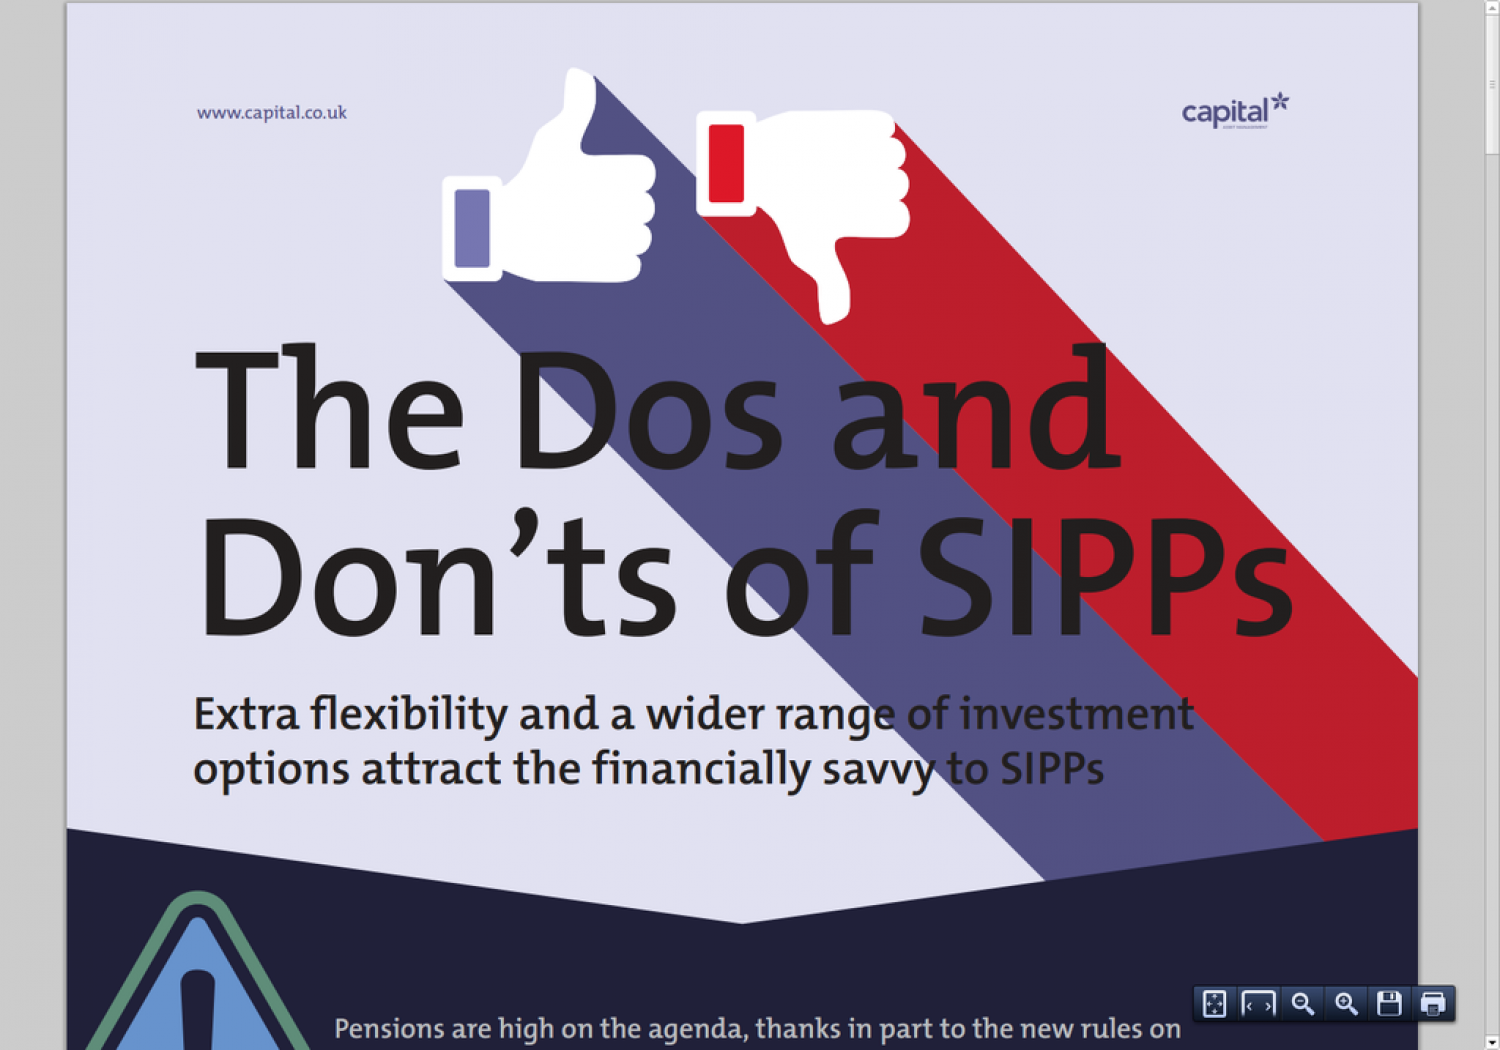 The Dos and Don'ts of Sipps Infographic